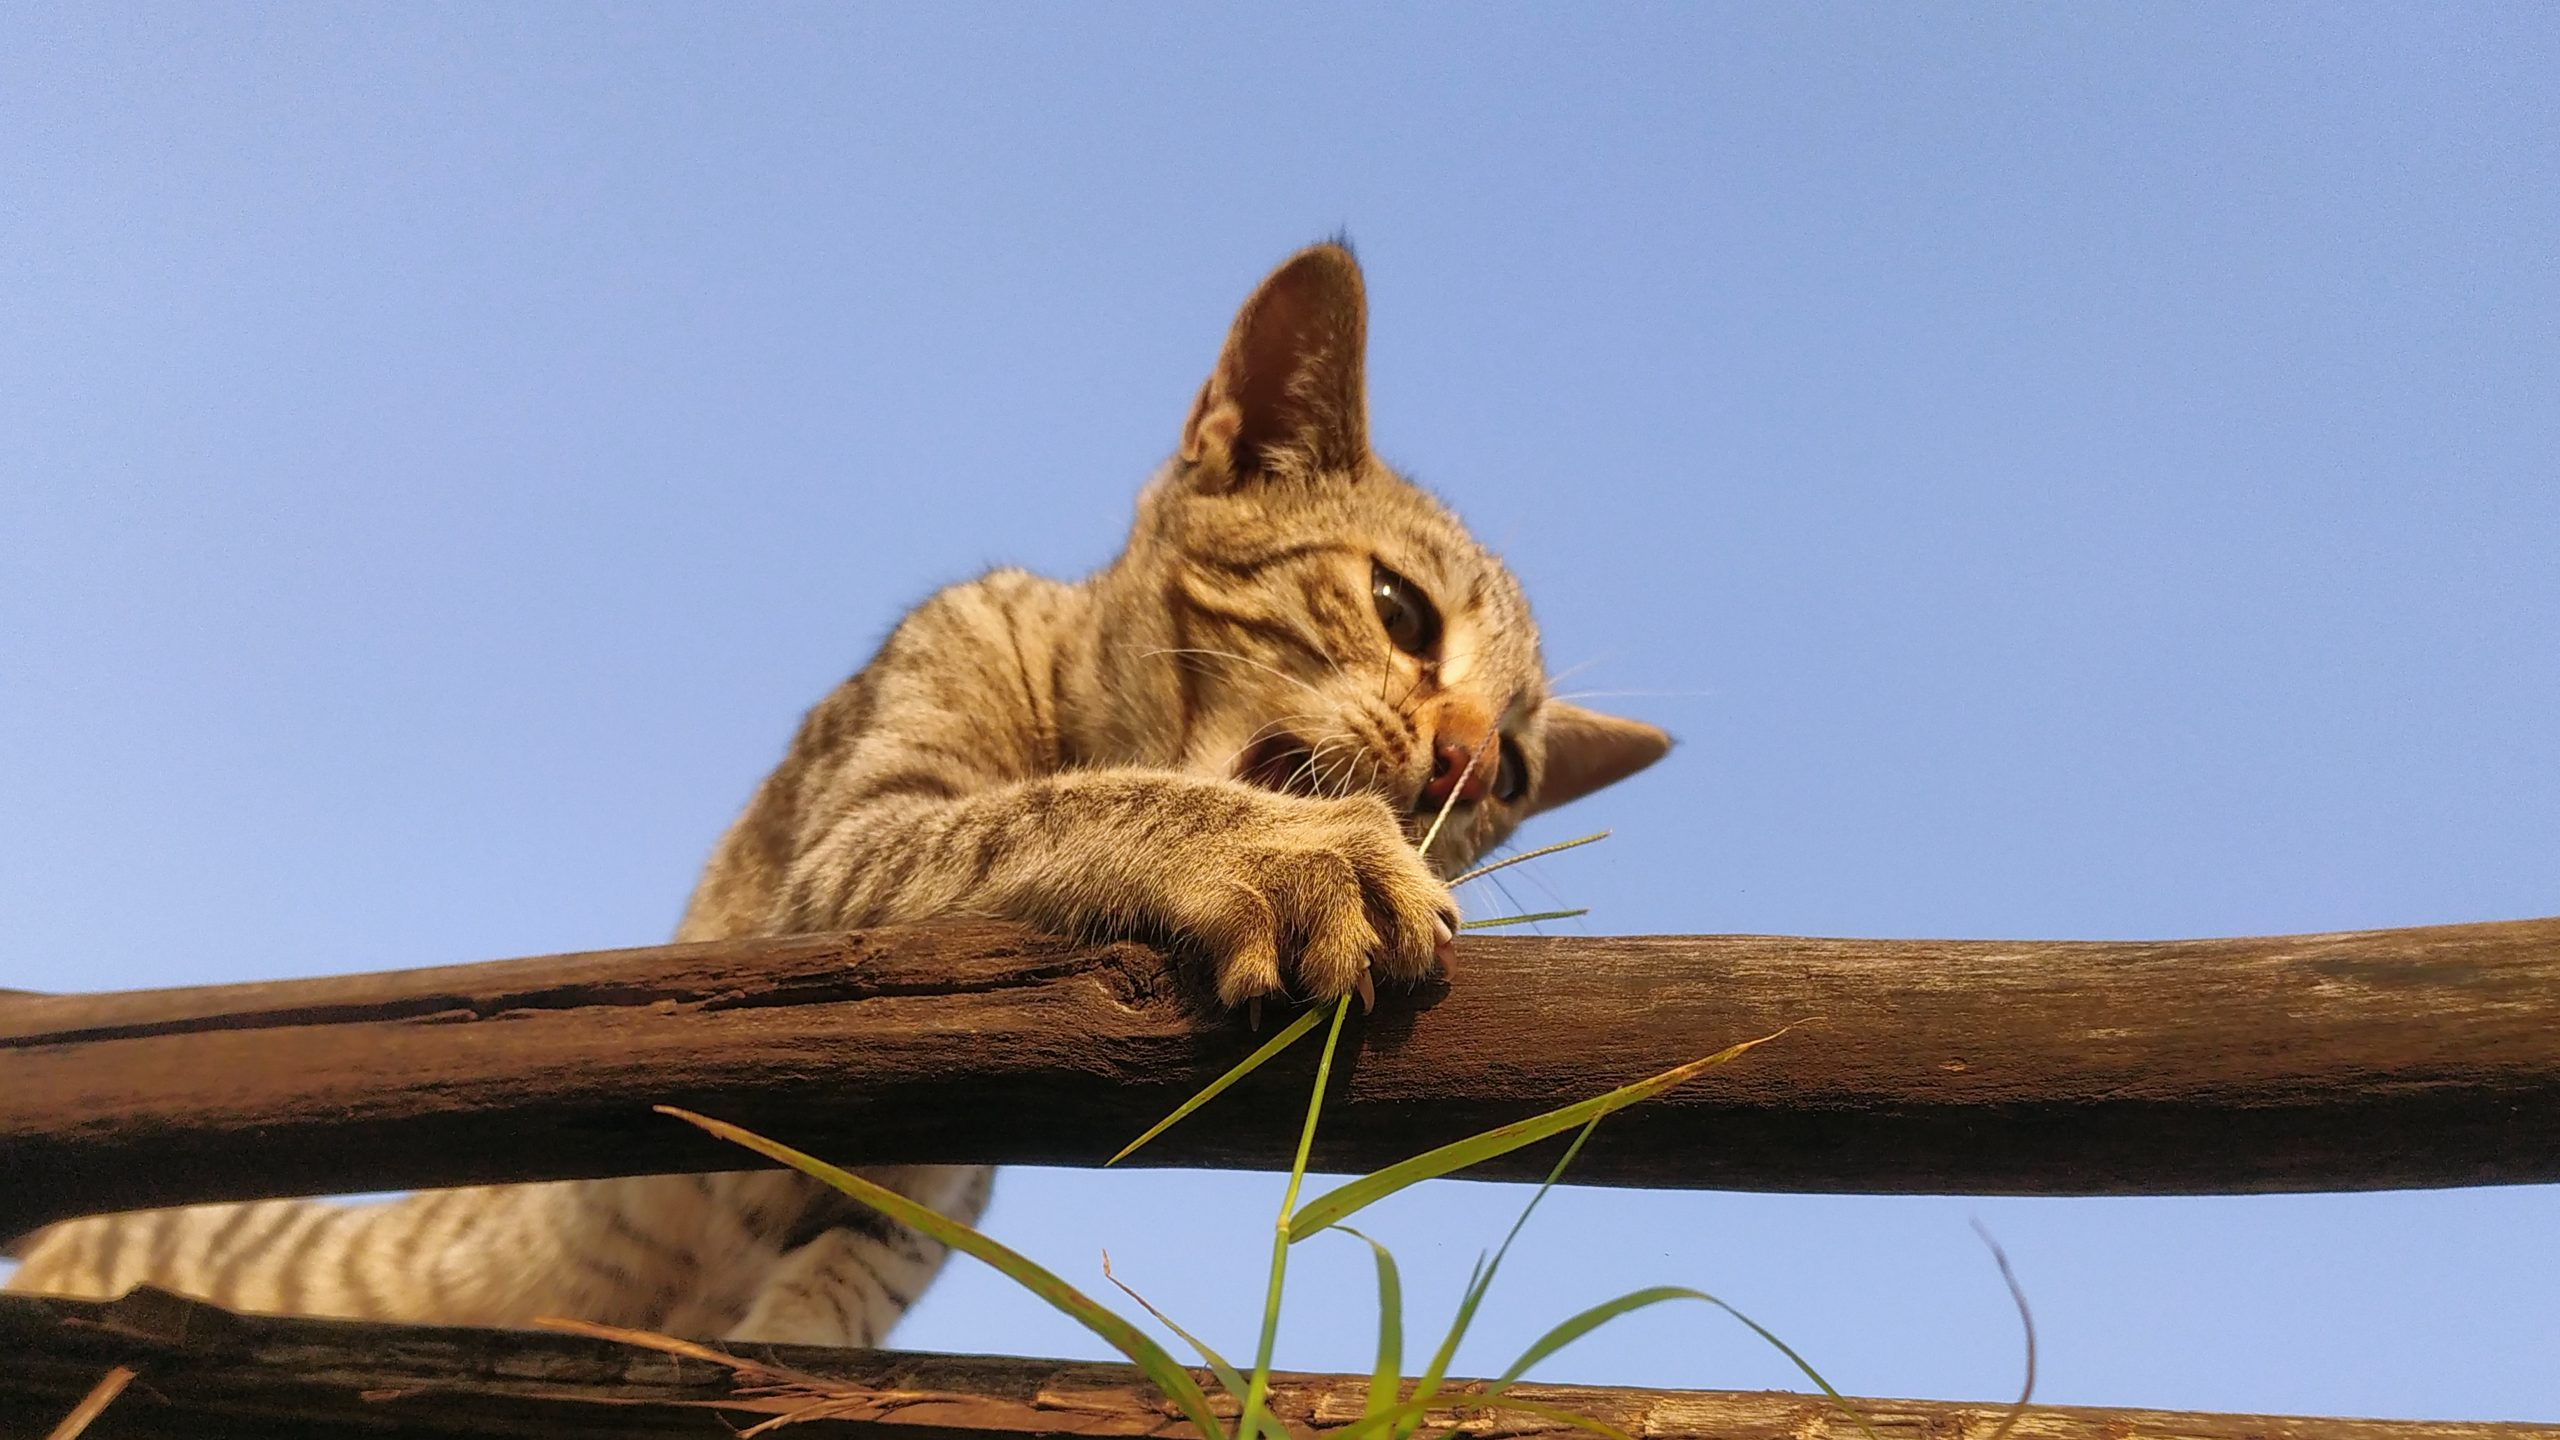 Little kitten on wood log